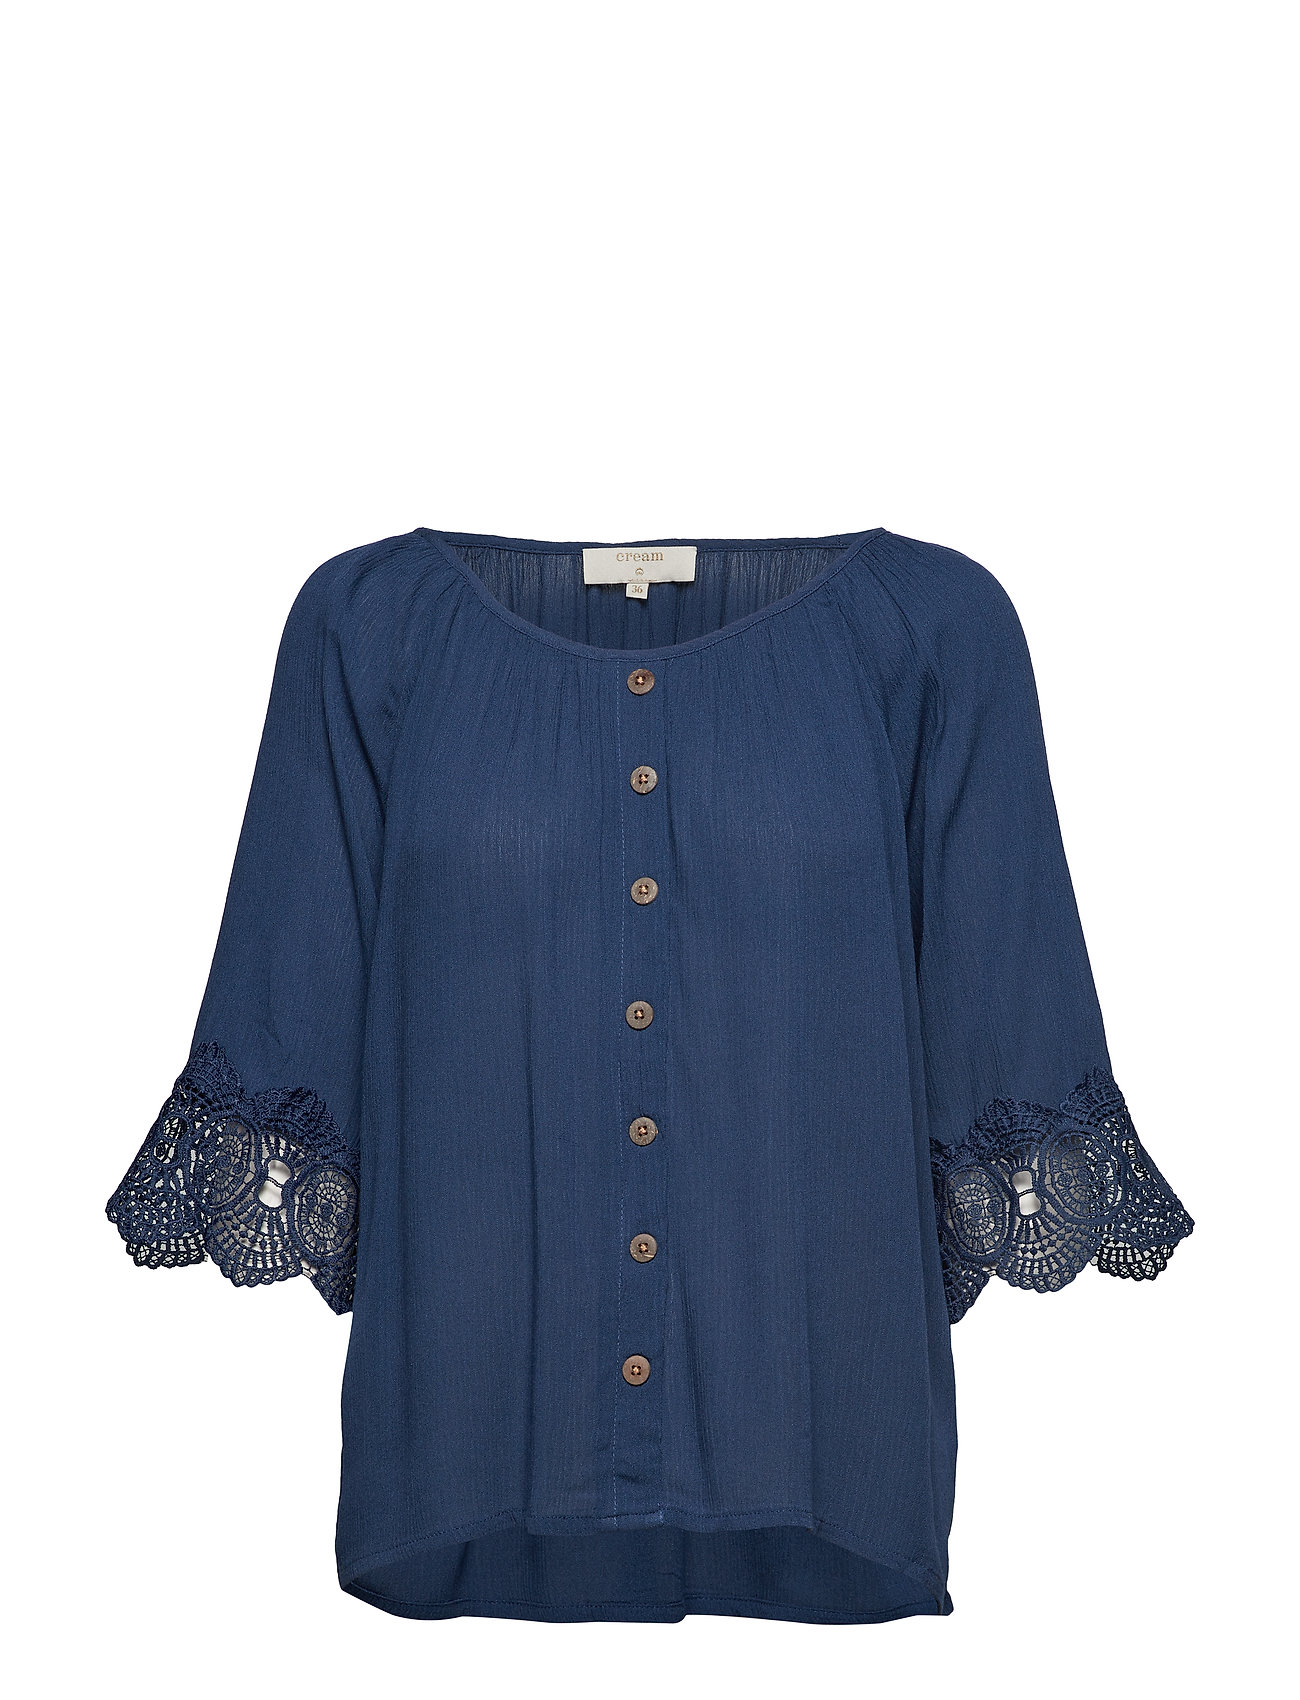 Cream Bea button blouse - DARK DENIM